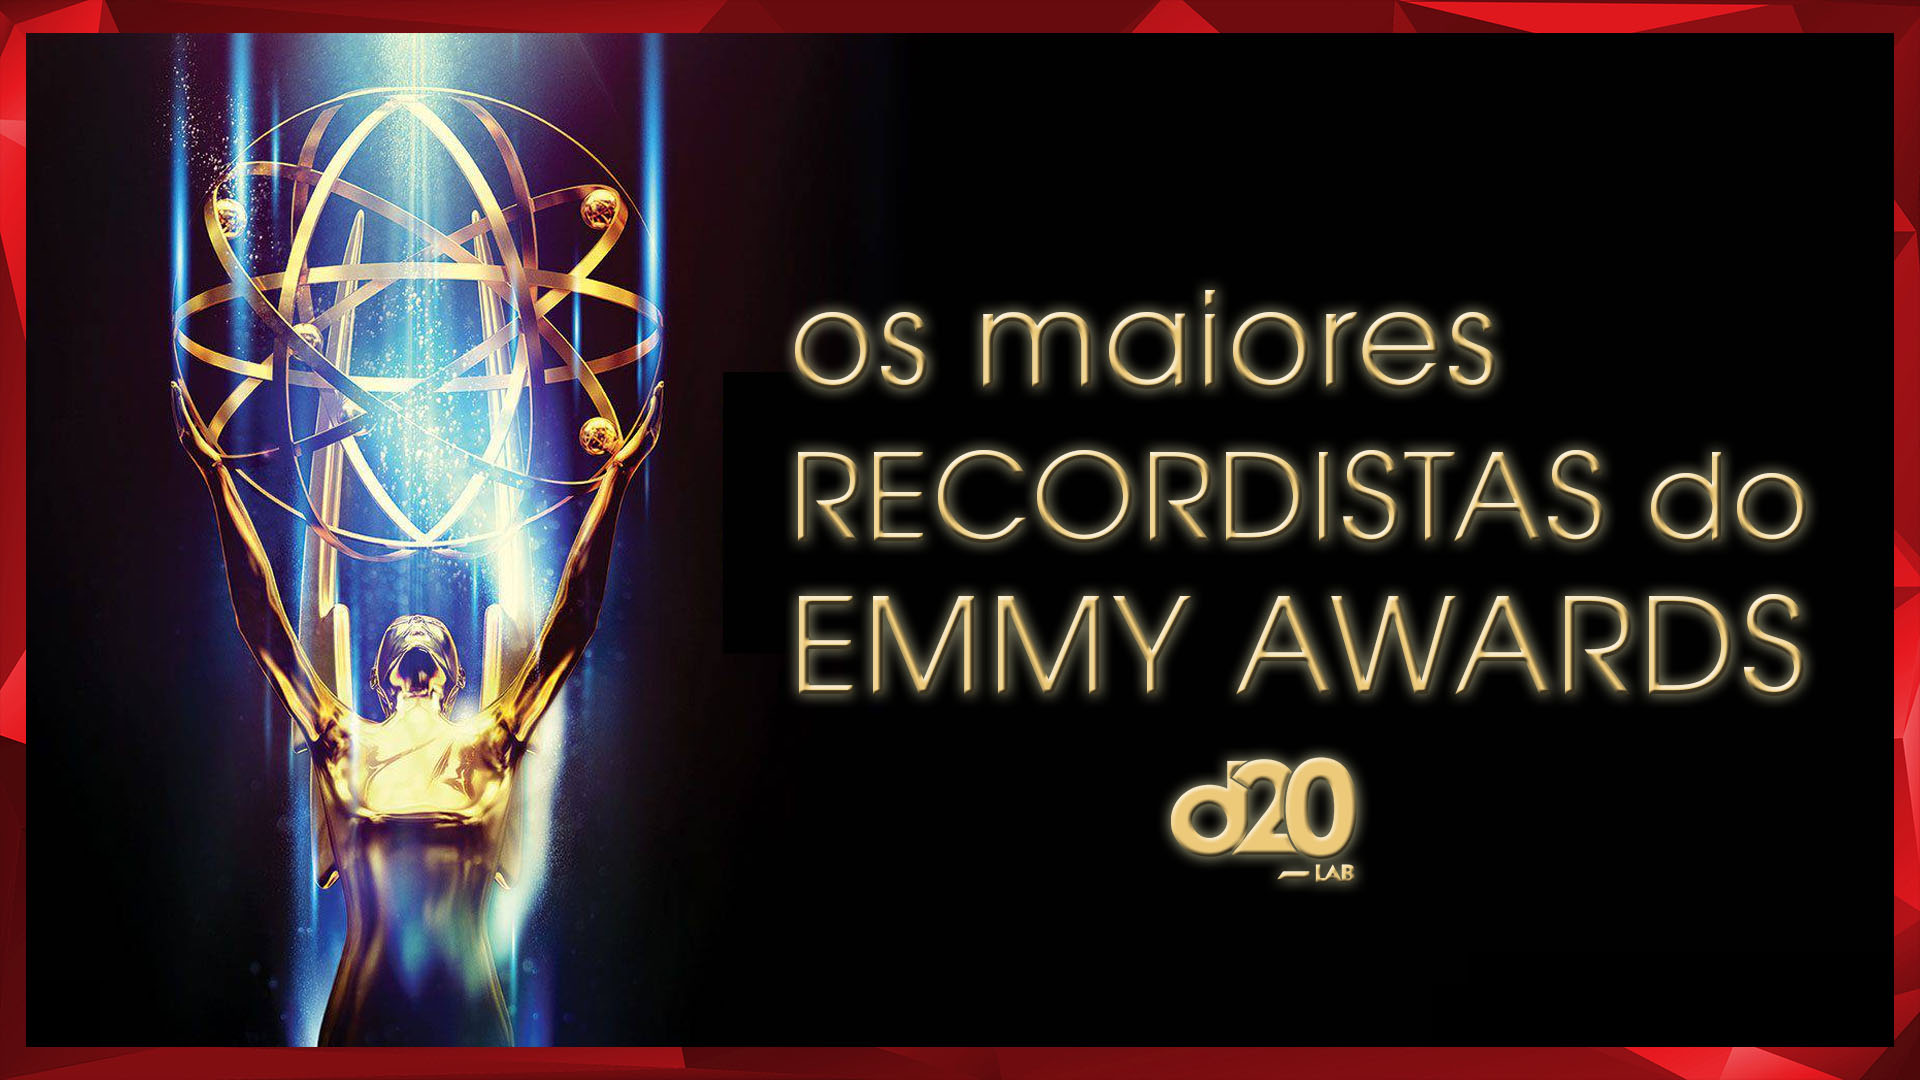 Os Maiores Recordistas do Emmy Awards | D20 Lab 64